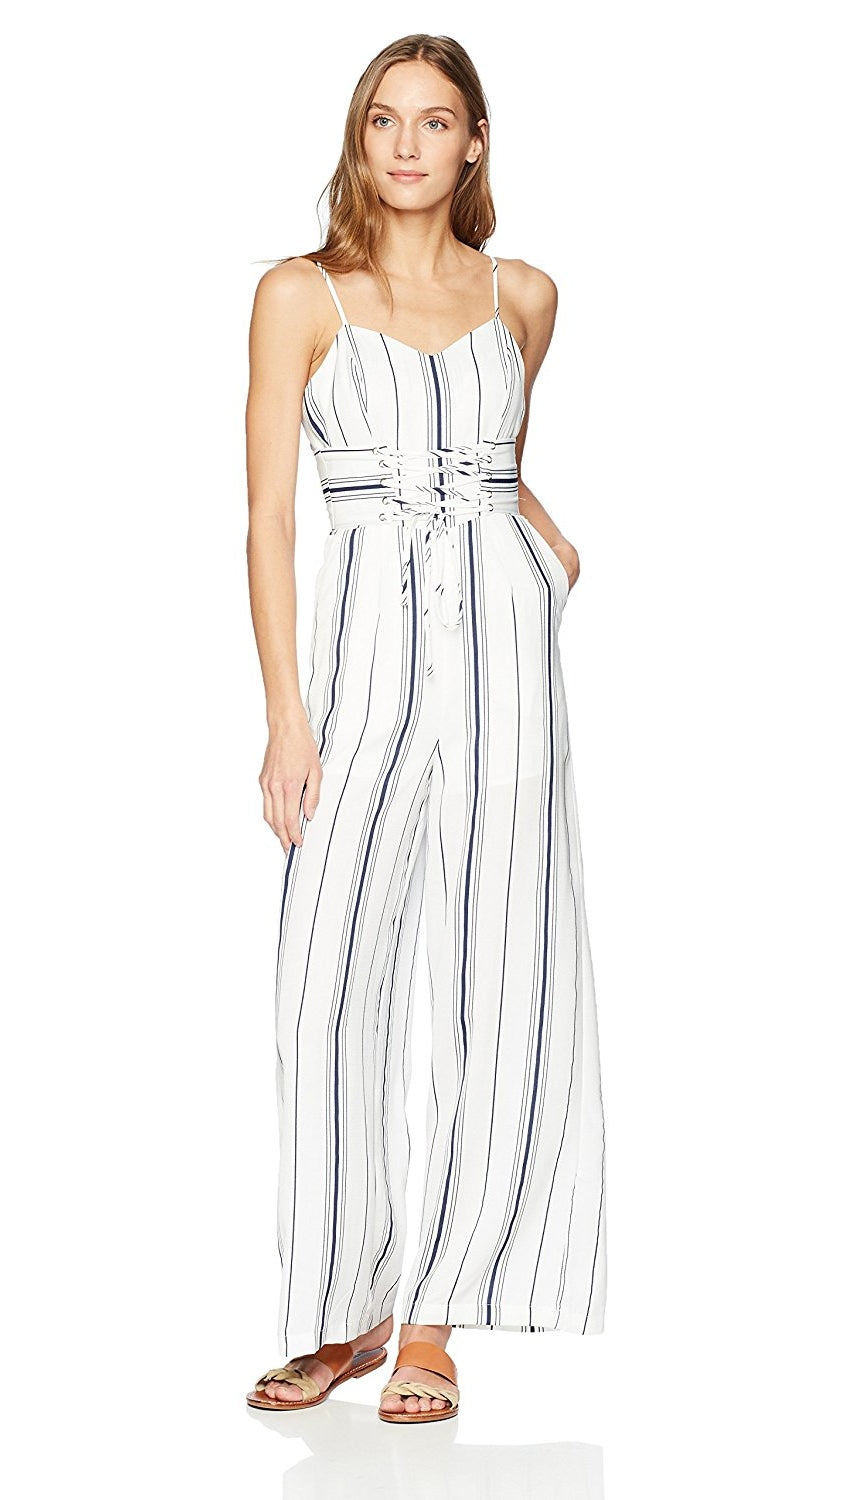 2b4c6cb81f9a J.O.A. JOA Sleeveless Bustier Jumpsuit Corset Lace Up Belt White Navy  Stripes